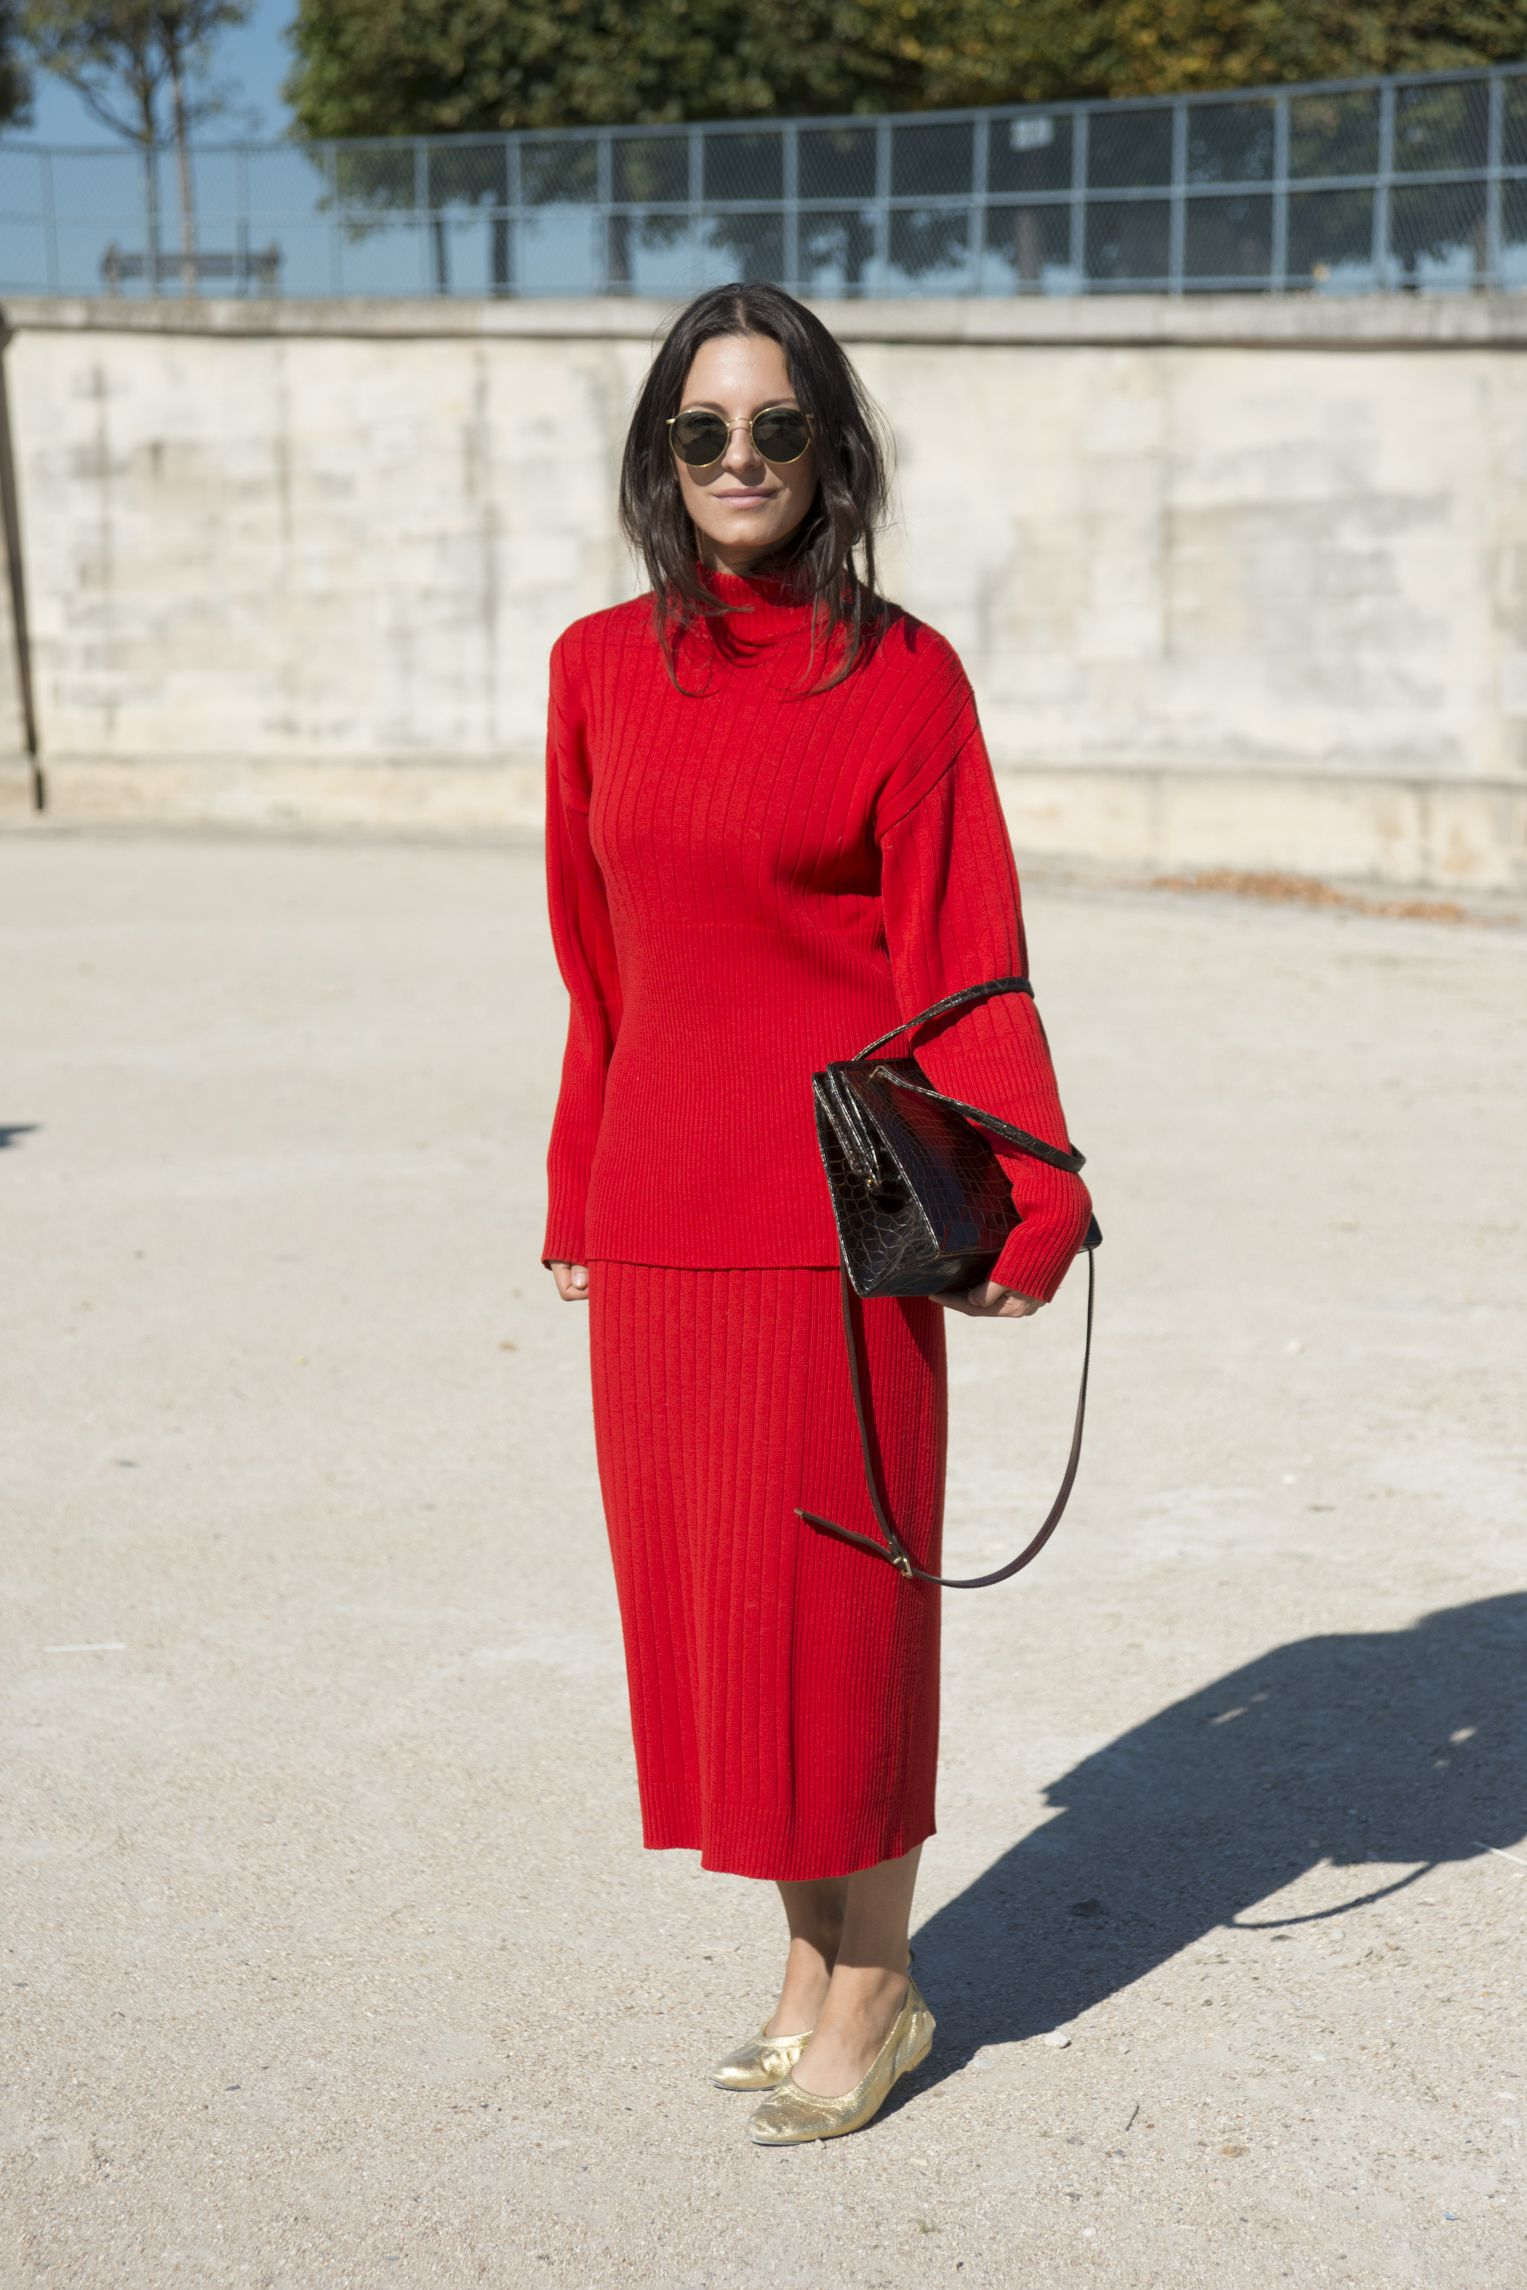 "<p>Head-to-toe knits have been A Thing since Phobe Philo, and they're showing no signs of stopping. Monochrome is best because 1) easy and 2) <a href=""http://www.marieclaire.com/fashion/tips/g3183/things-make-you-look-shorter/"">taller</a>. </p>"